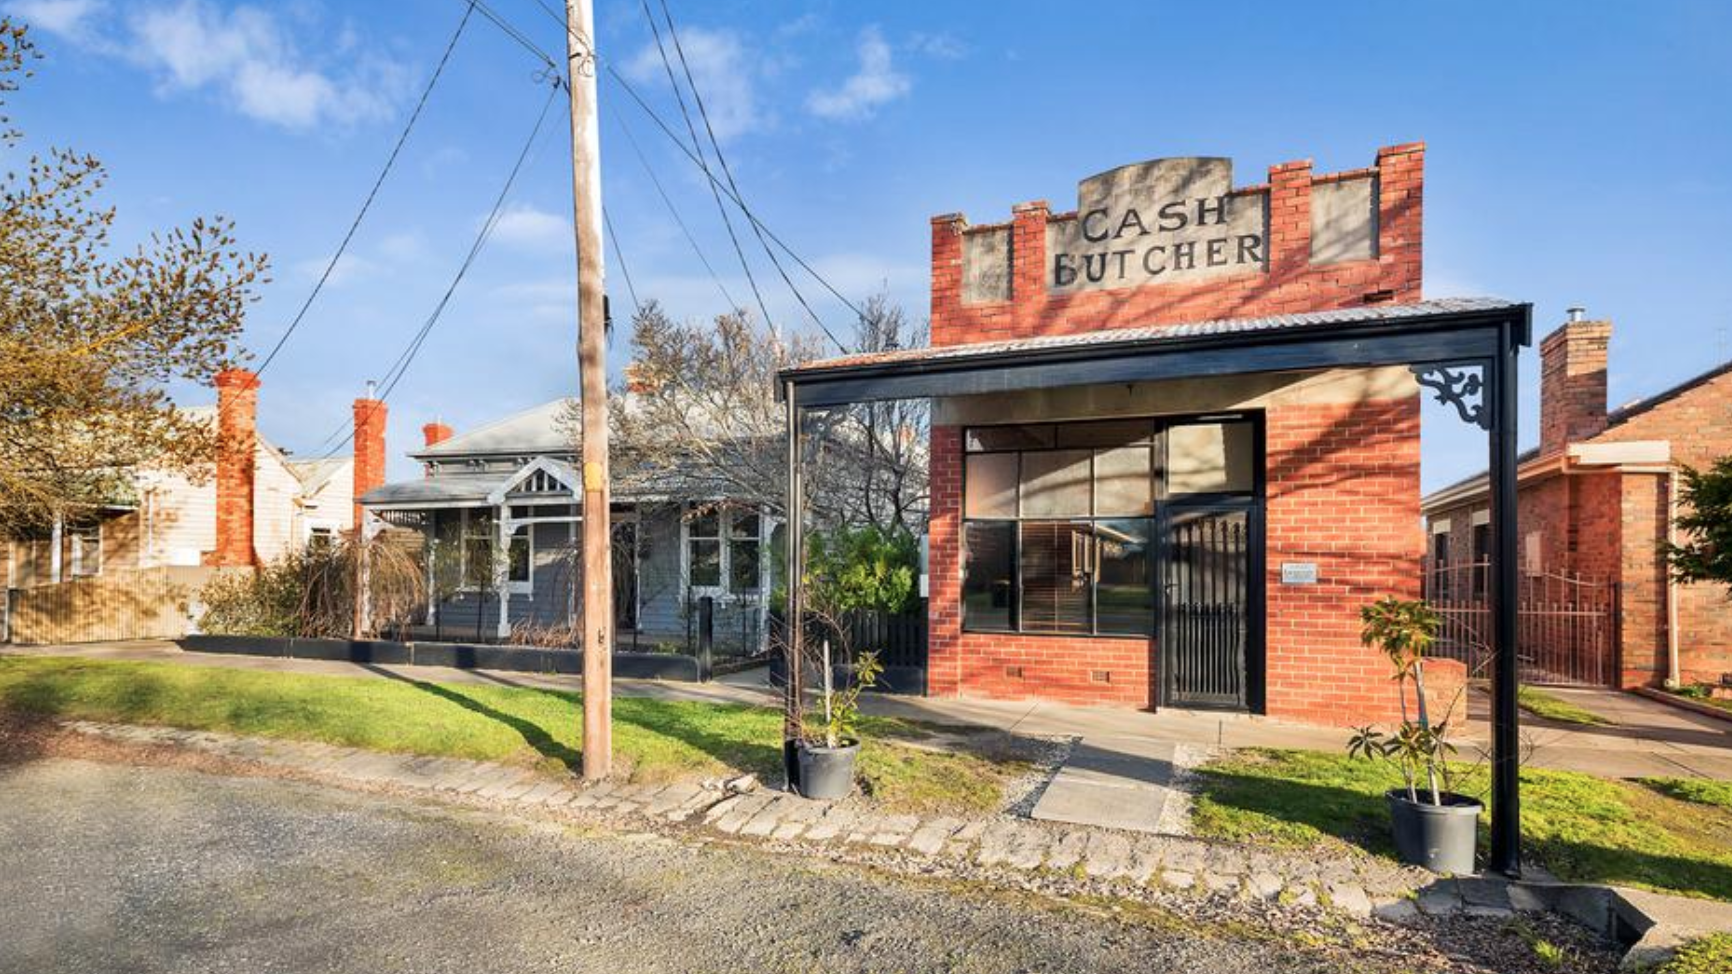 Vic: Vintage butcher shop - hell yes